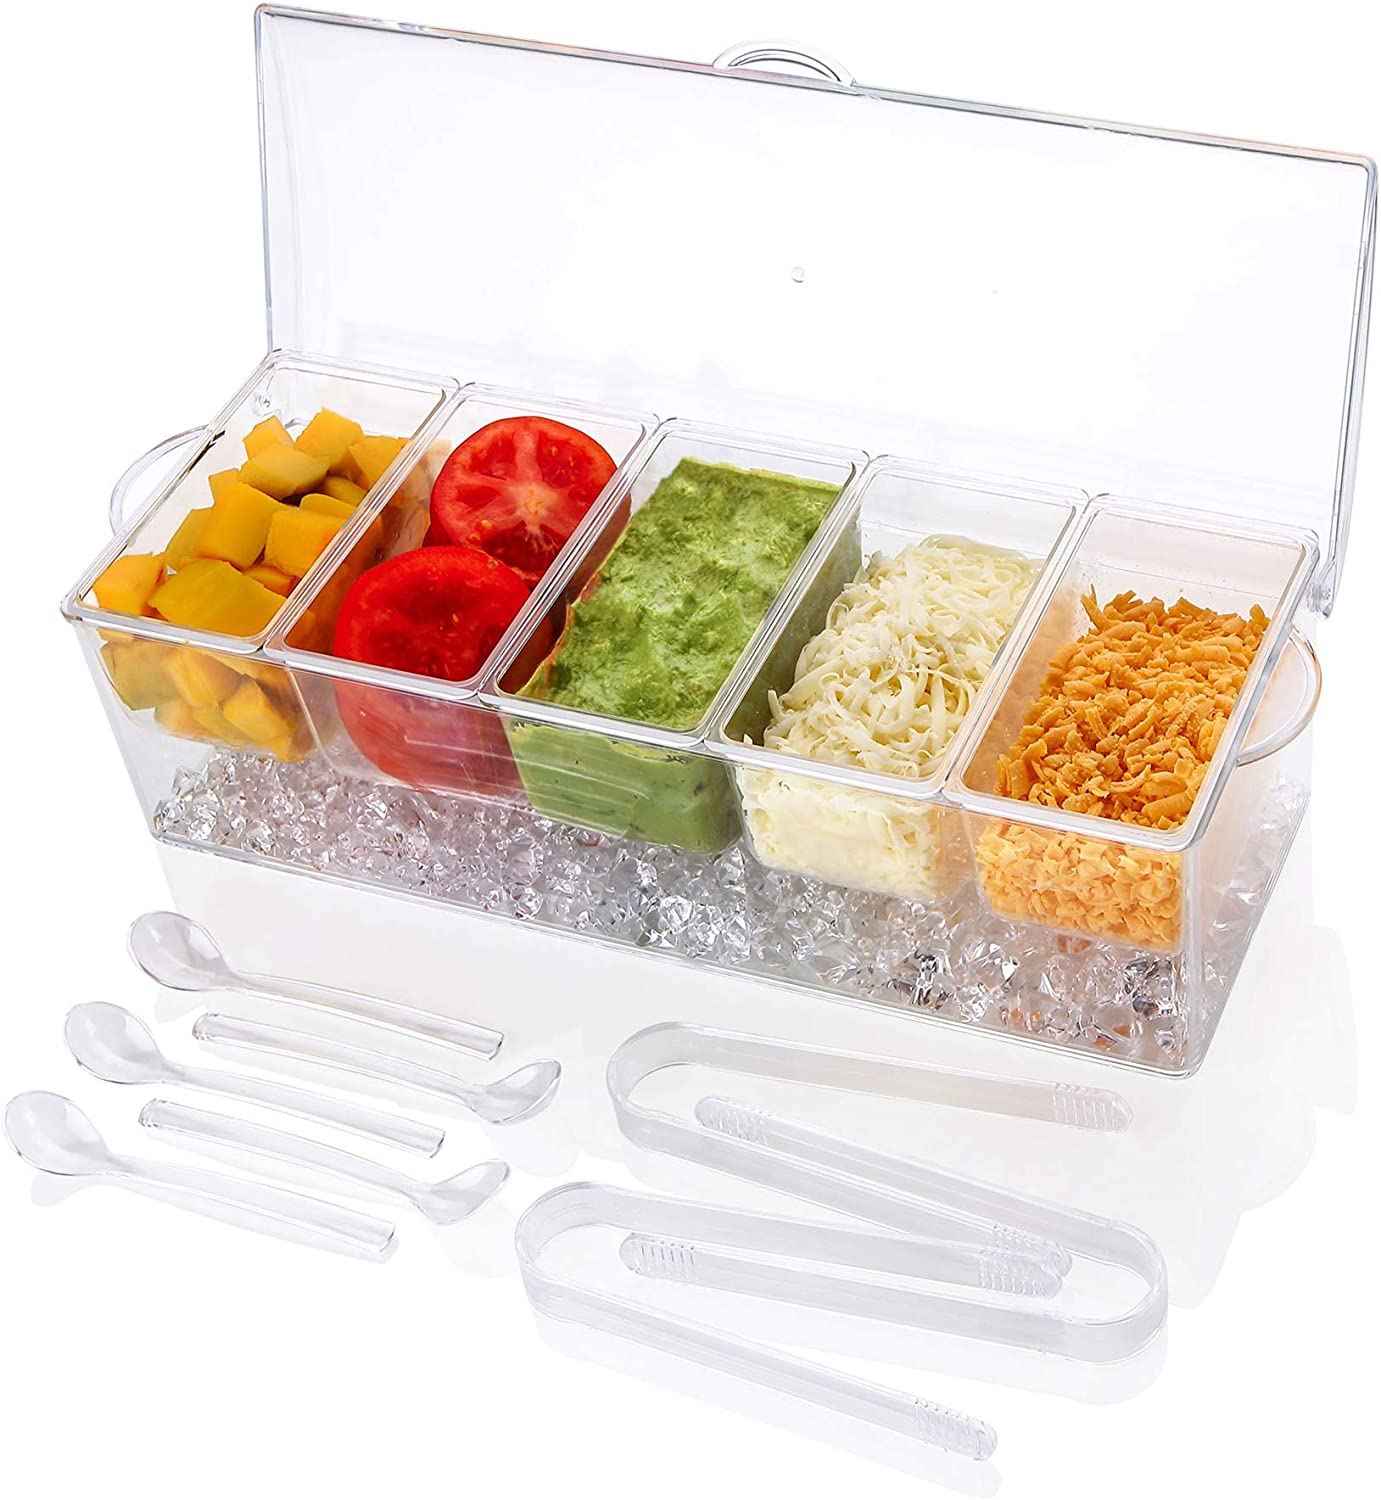 IVYONE Ice Chilled 5 Compartment Condiment Server Caddy | Plastic Storage Food Containers | Serving Tray Container with 5 Removable Dishes over 2 Cup Capacity Each and Hinged Lid